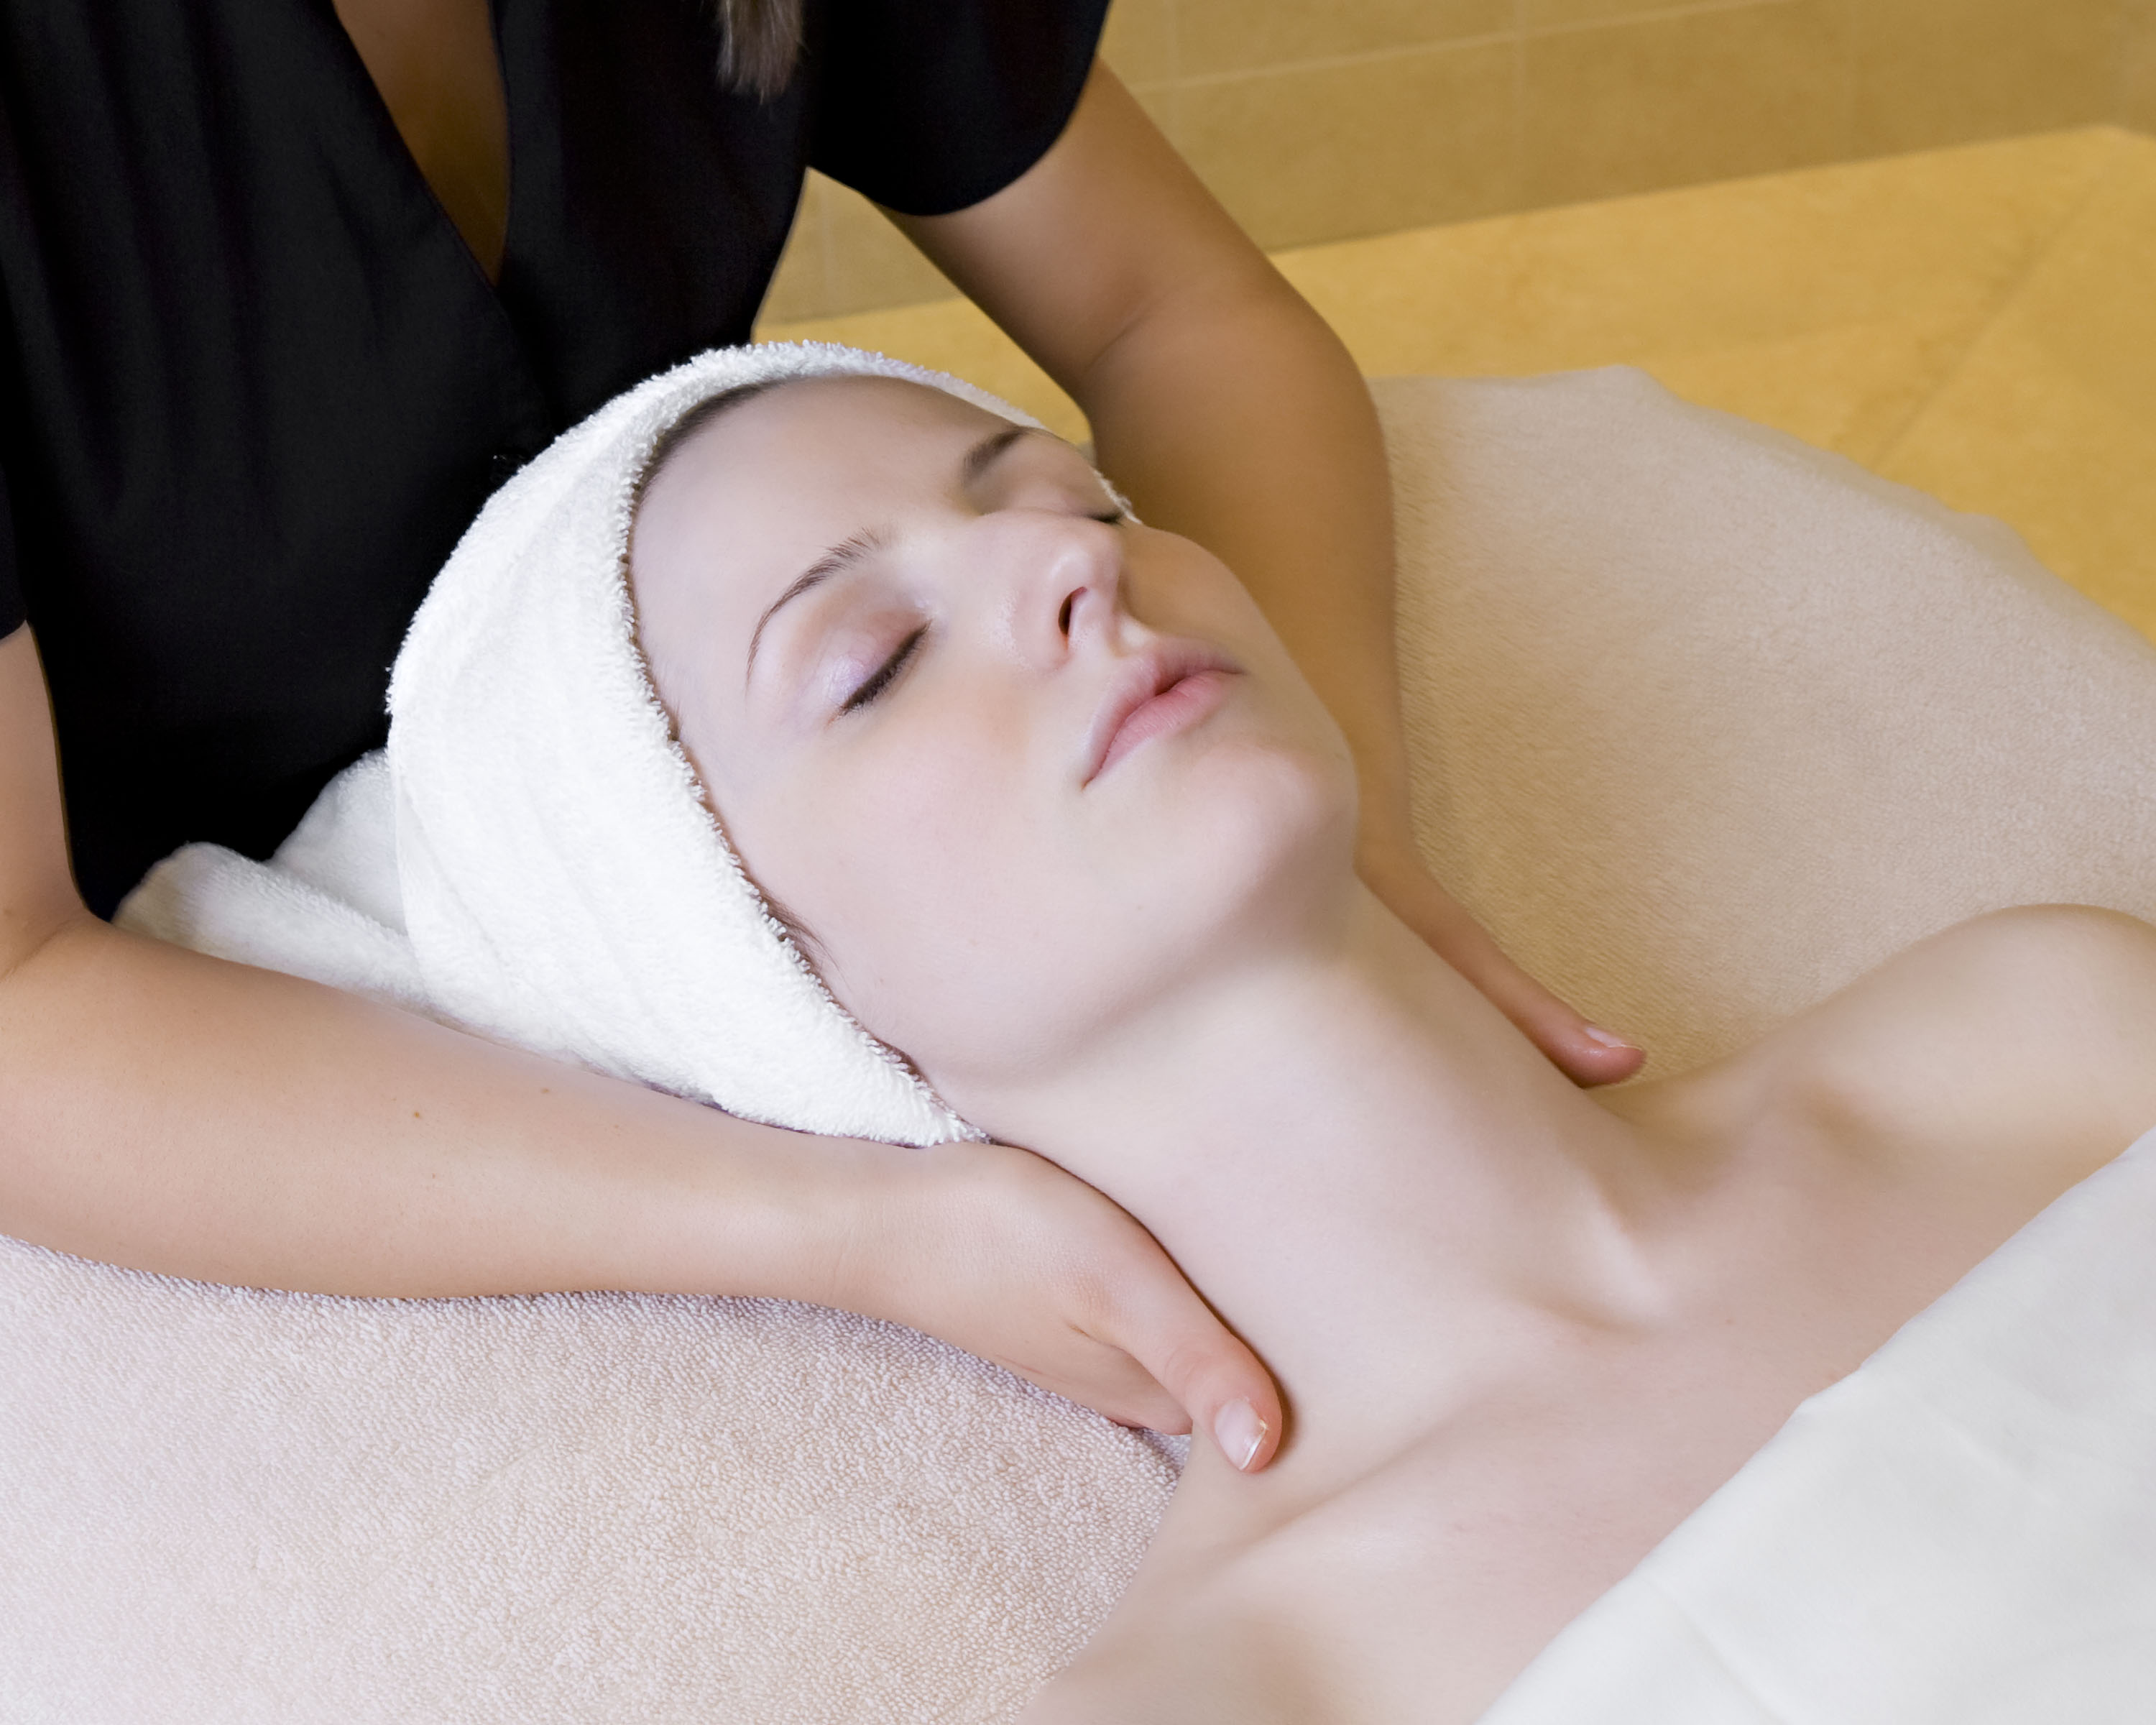 Are you lost without your skin care therapist? Well, you can relax. The team at Dol-as Spa is here to assist you until you can visit us again.